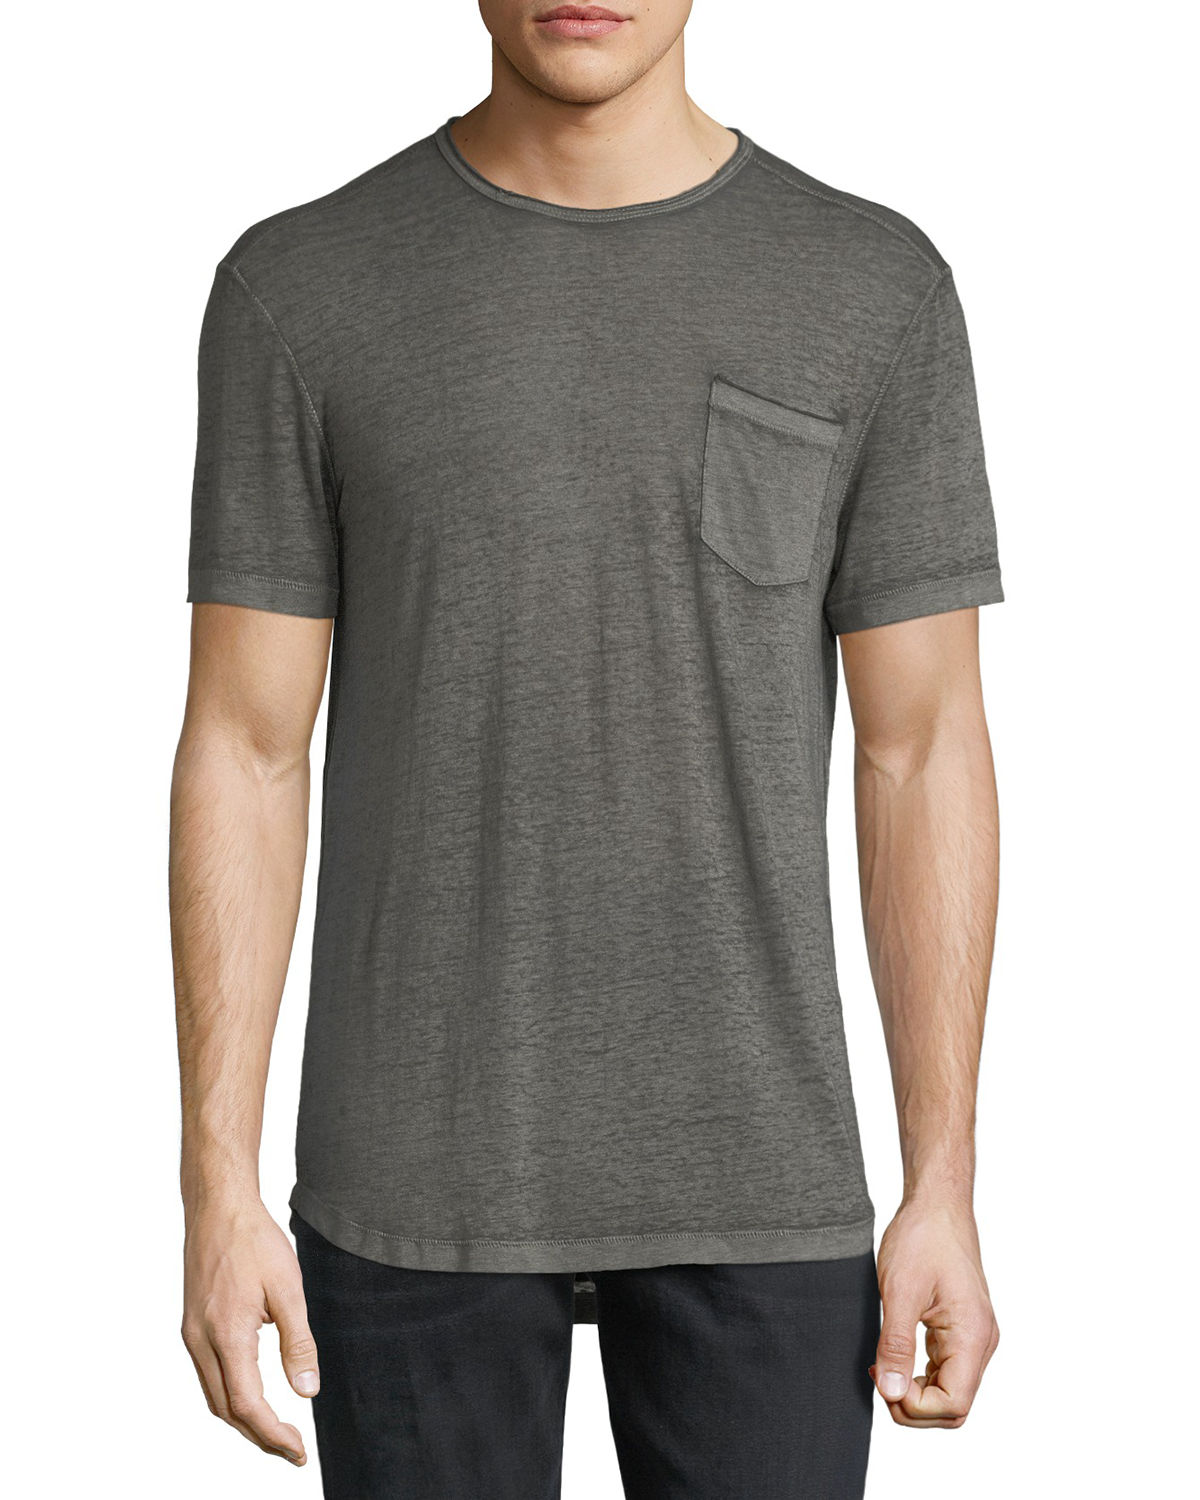 76d0ff564 John Varvatos Star USA Men's Burnout T-Shirt | Neiman Marcus